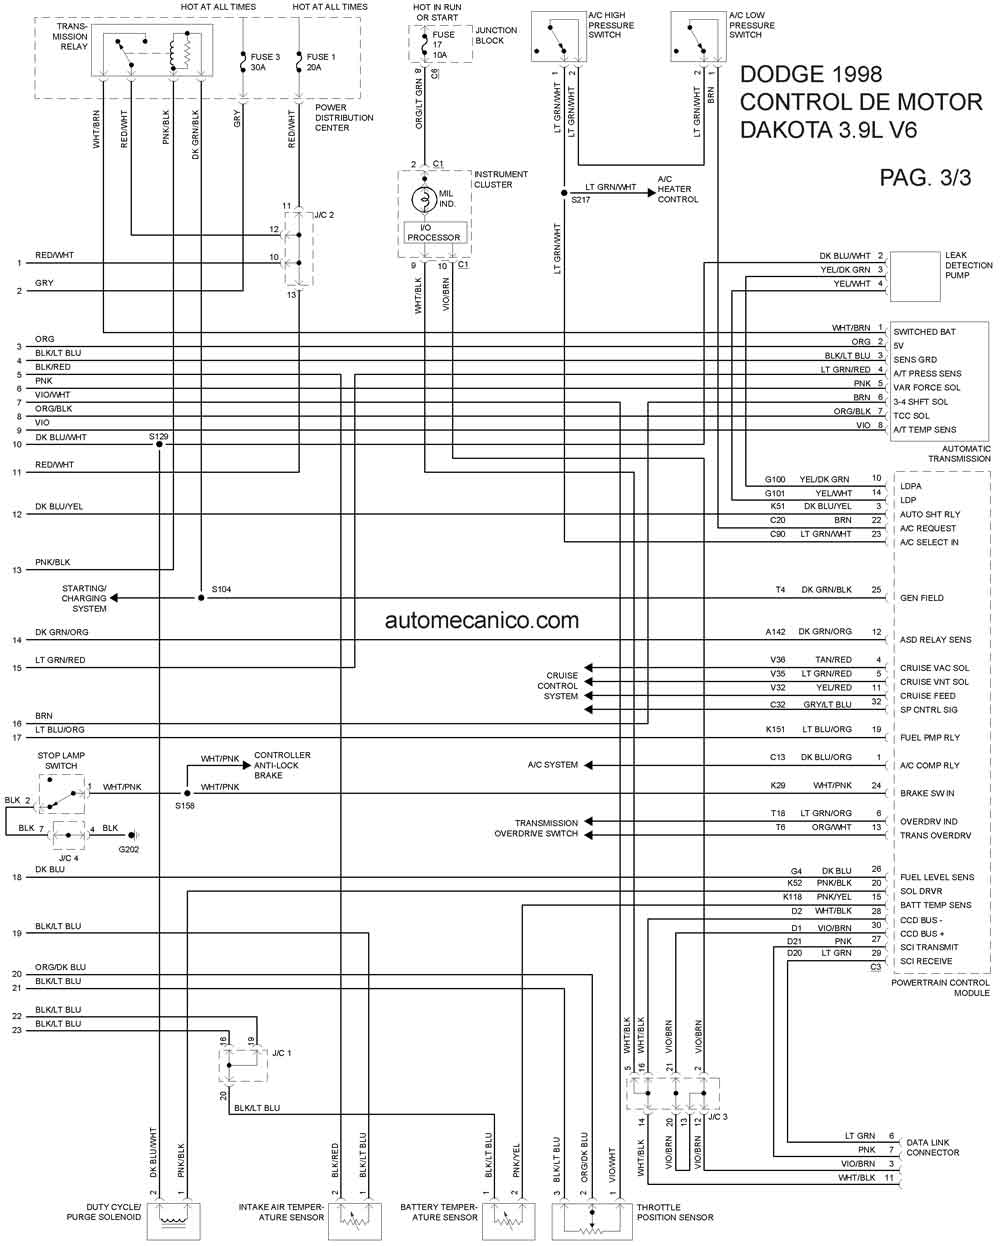 diagrama electrico de la dodge dakota 2002